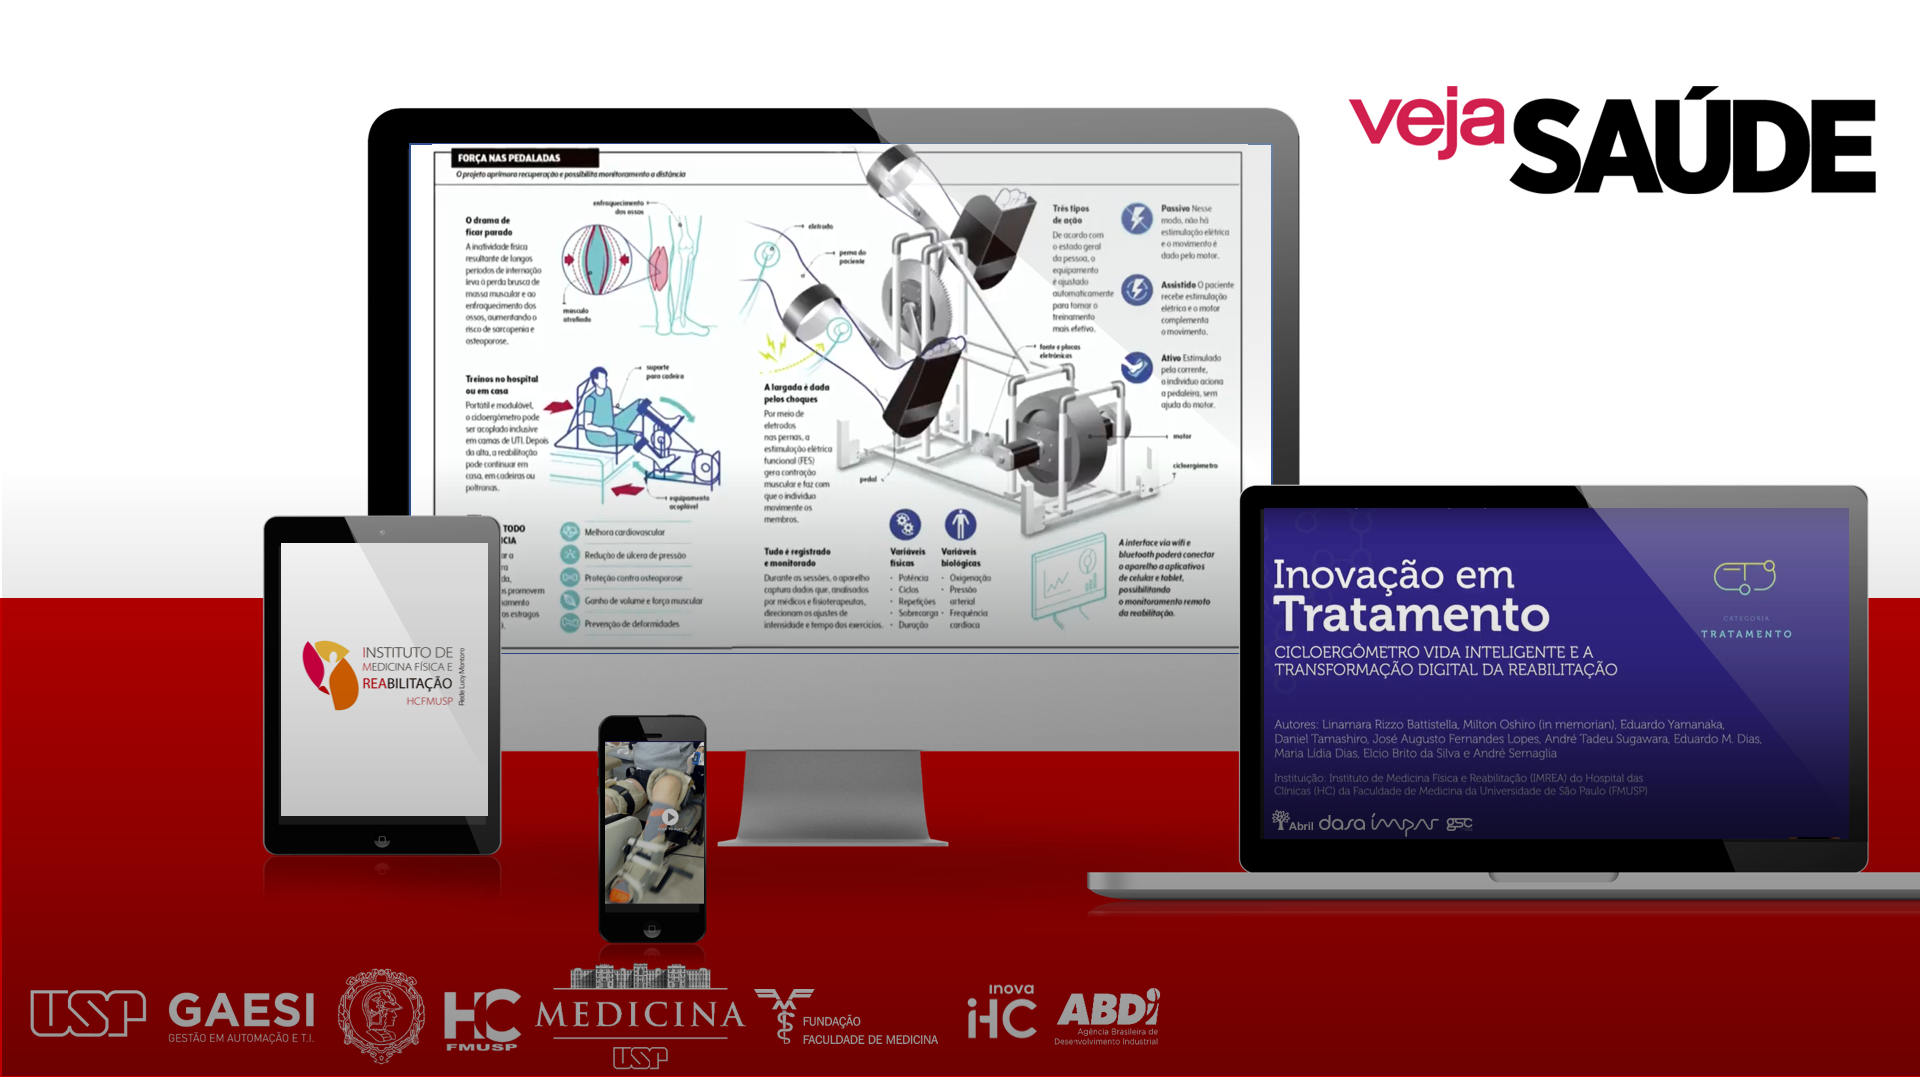 Veja Saúde: The biggest Brazilian innovations against Covid-19